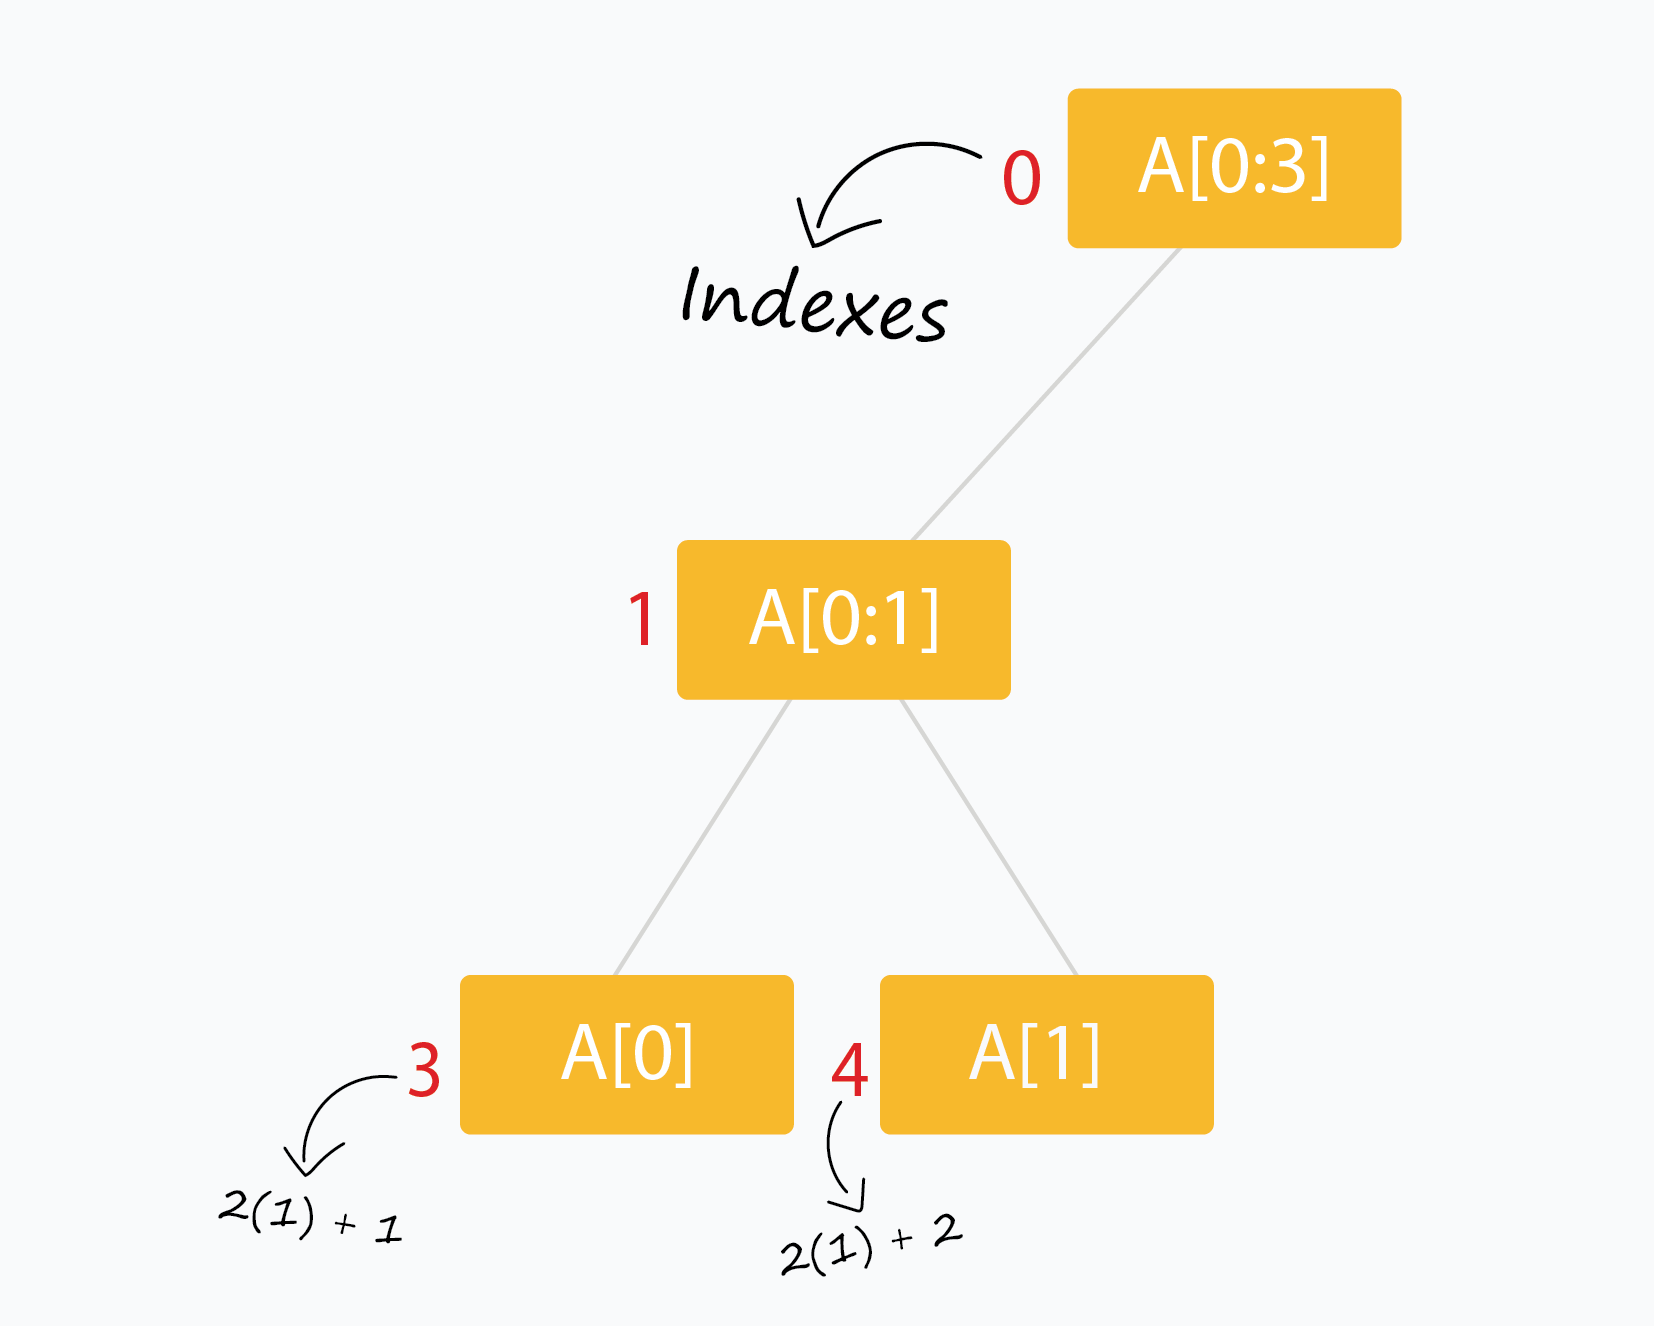 Children for a specific node are located at well defined indexes